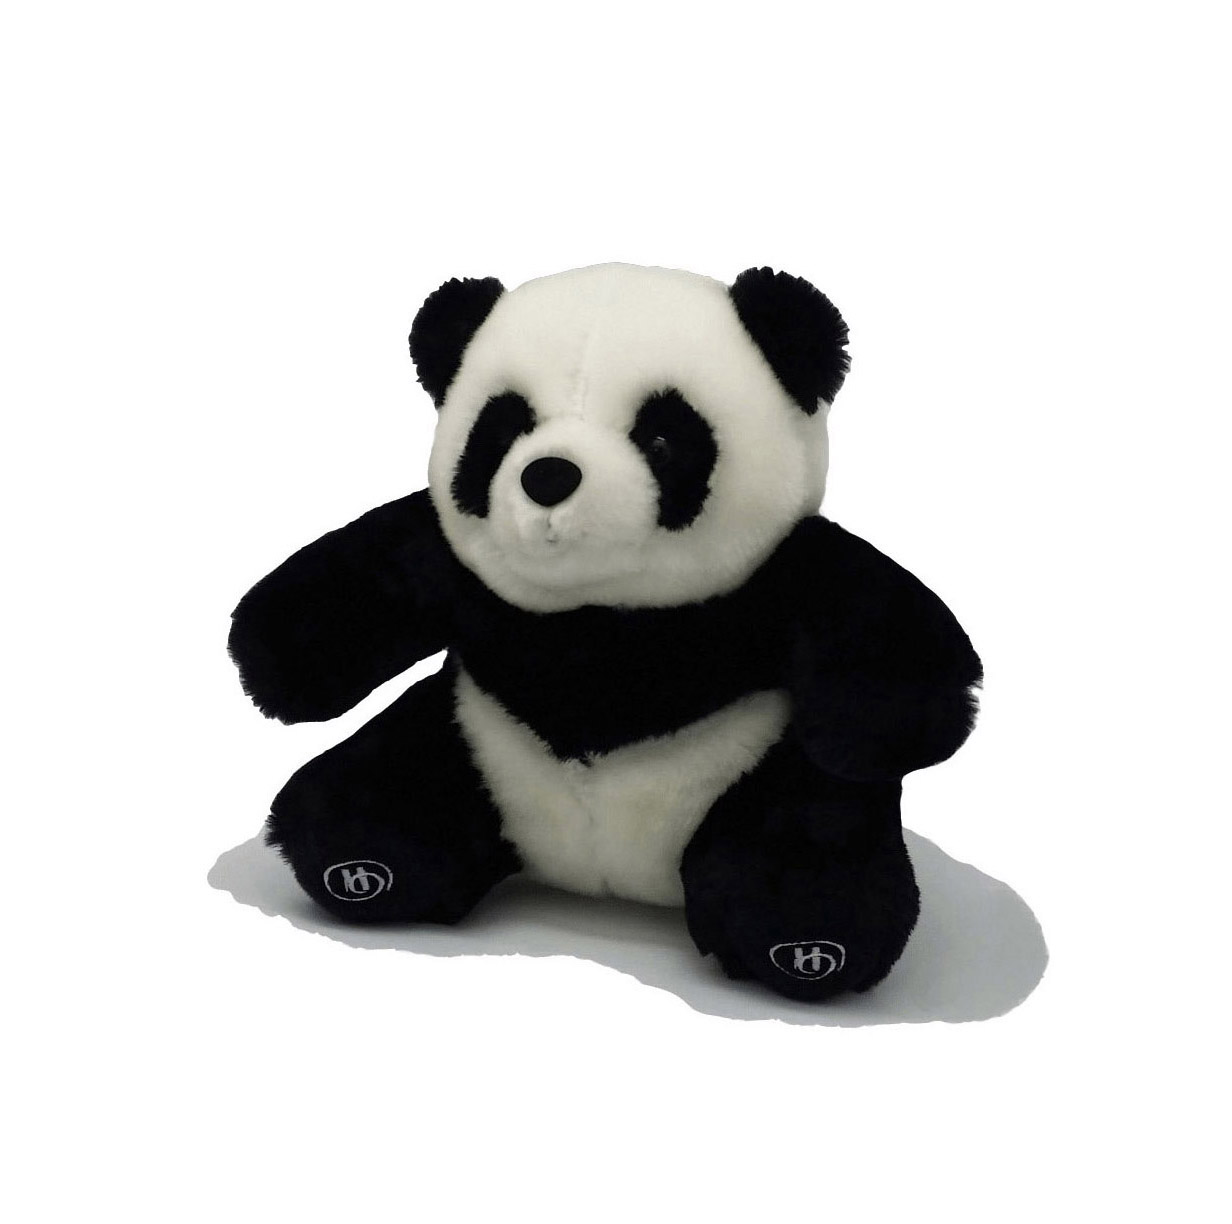 Customized promotional panda plush toys